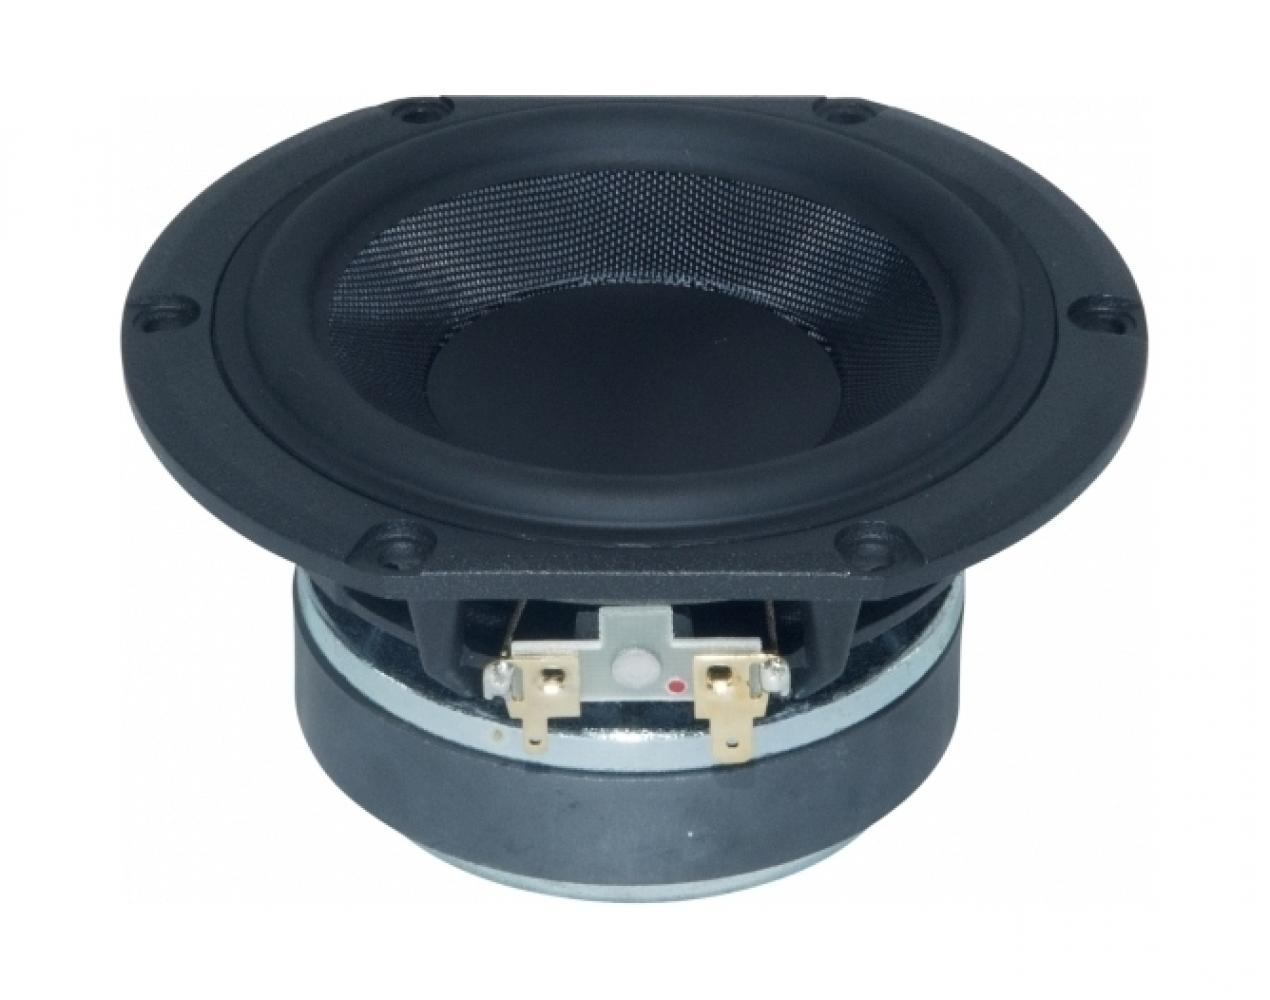 Details about Peerless by Tymphany 830992 4″ GFC Cone HDS Woofer